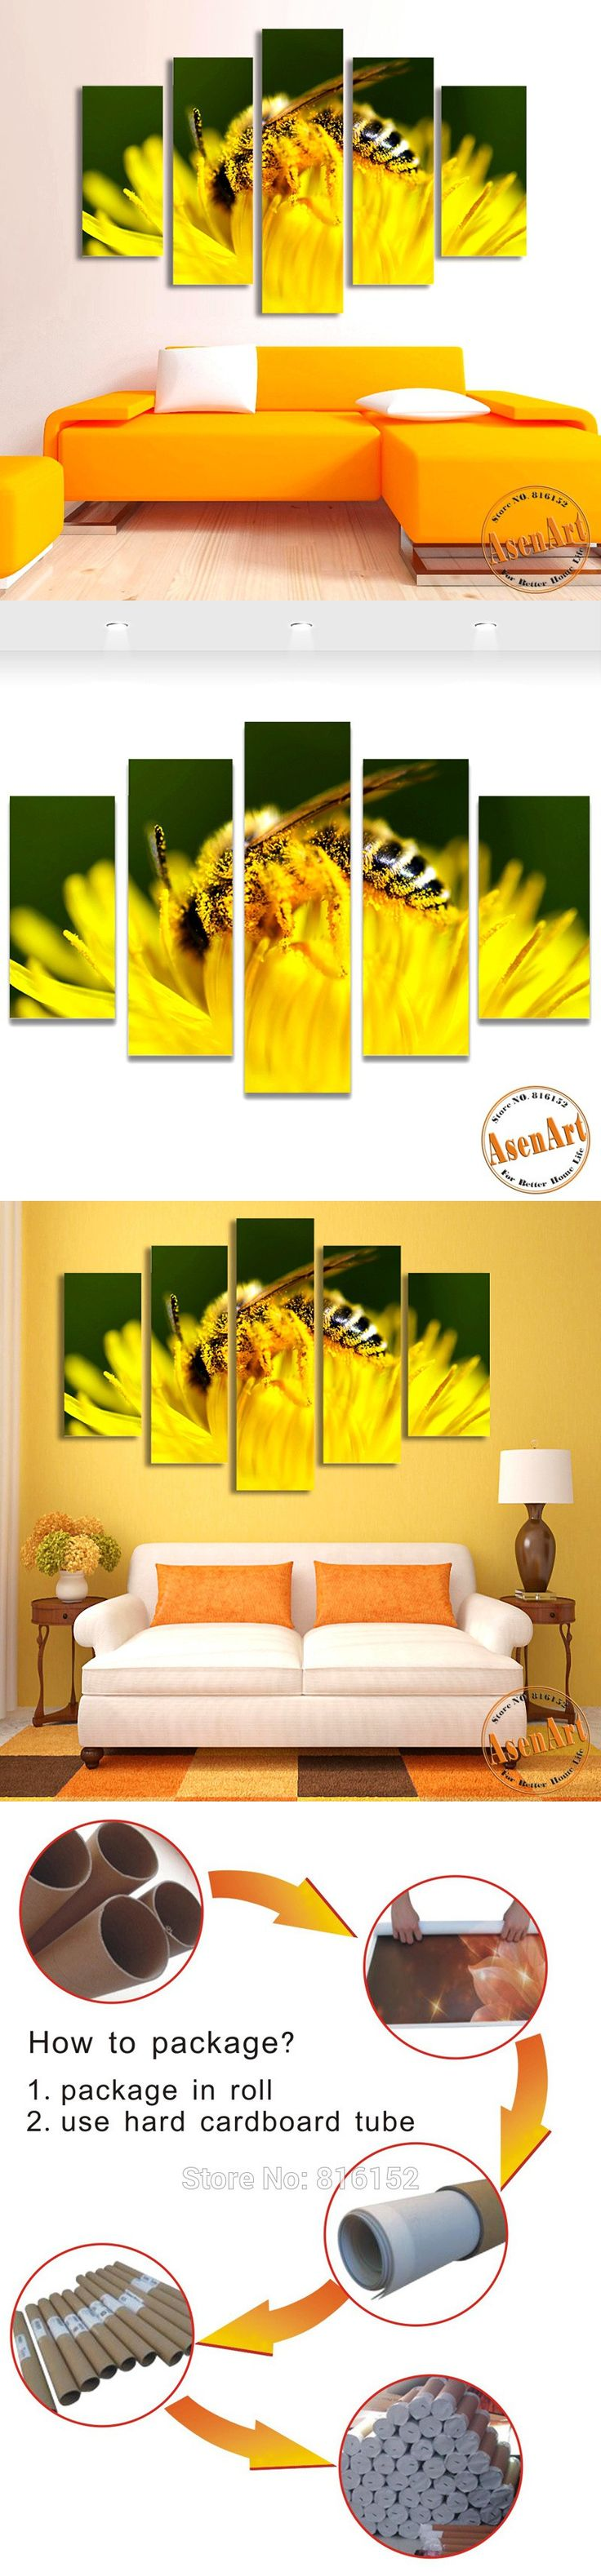 5 Panel Wall Art Canvas Prints Honey Bee Pictures Animal Painting Yellow Flower Pictures for Bedroom Modern Home Decor No Frame $56